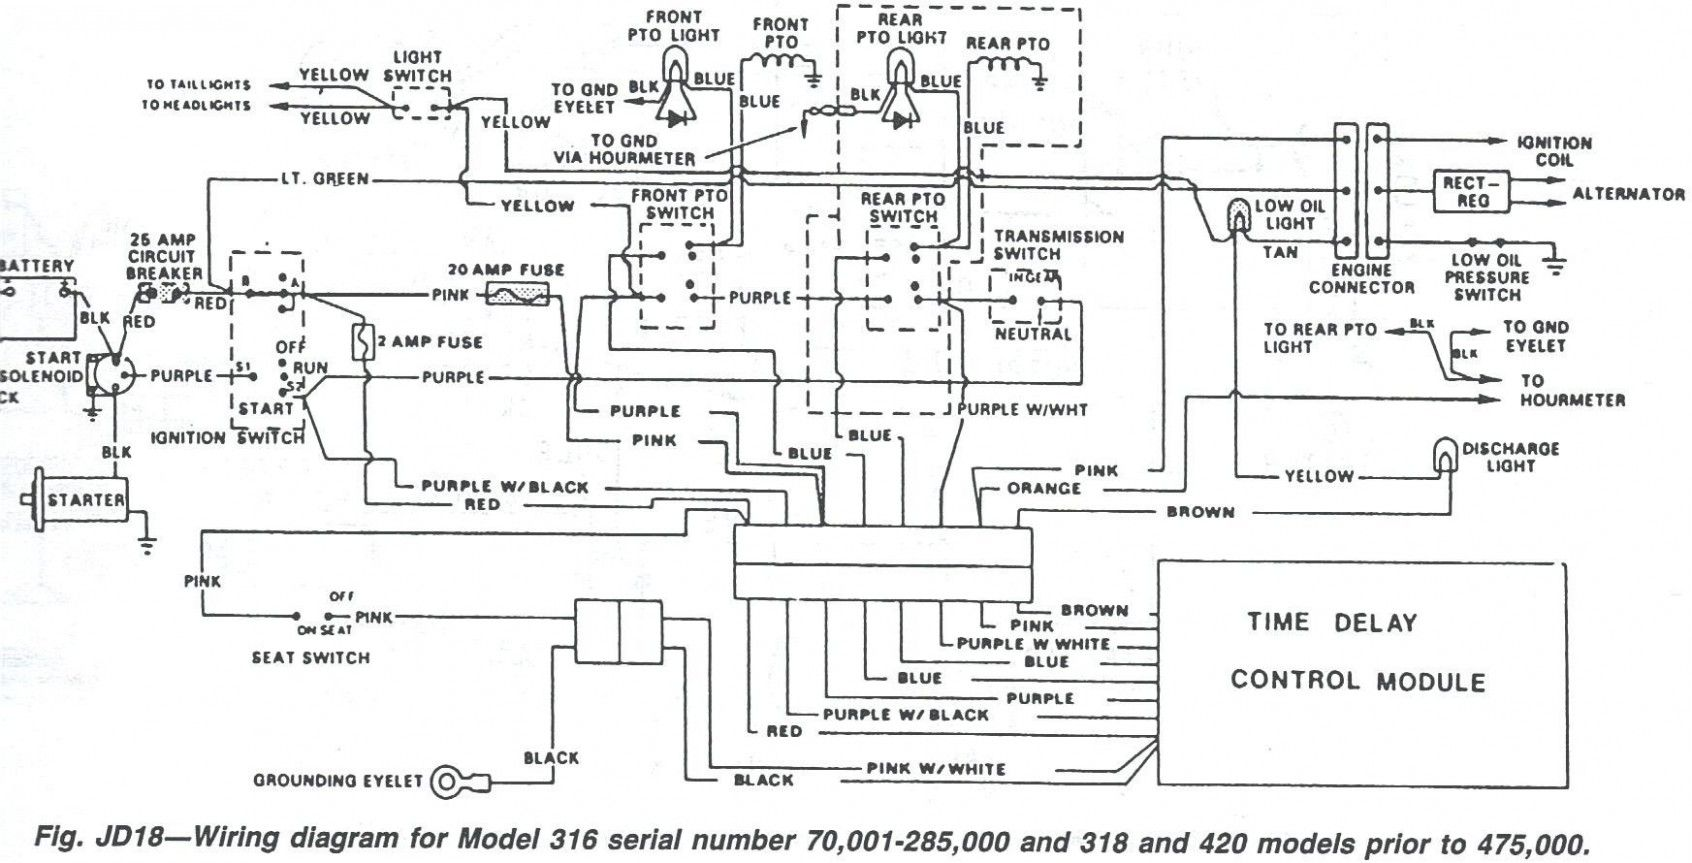 john deere 318 wiring diagram - wiring diagram explained john deere wiring diagram for h  mexico-schluessel.de